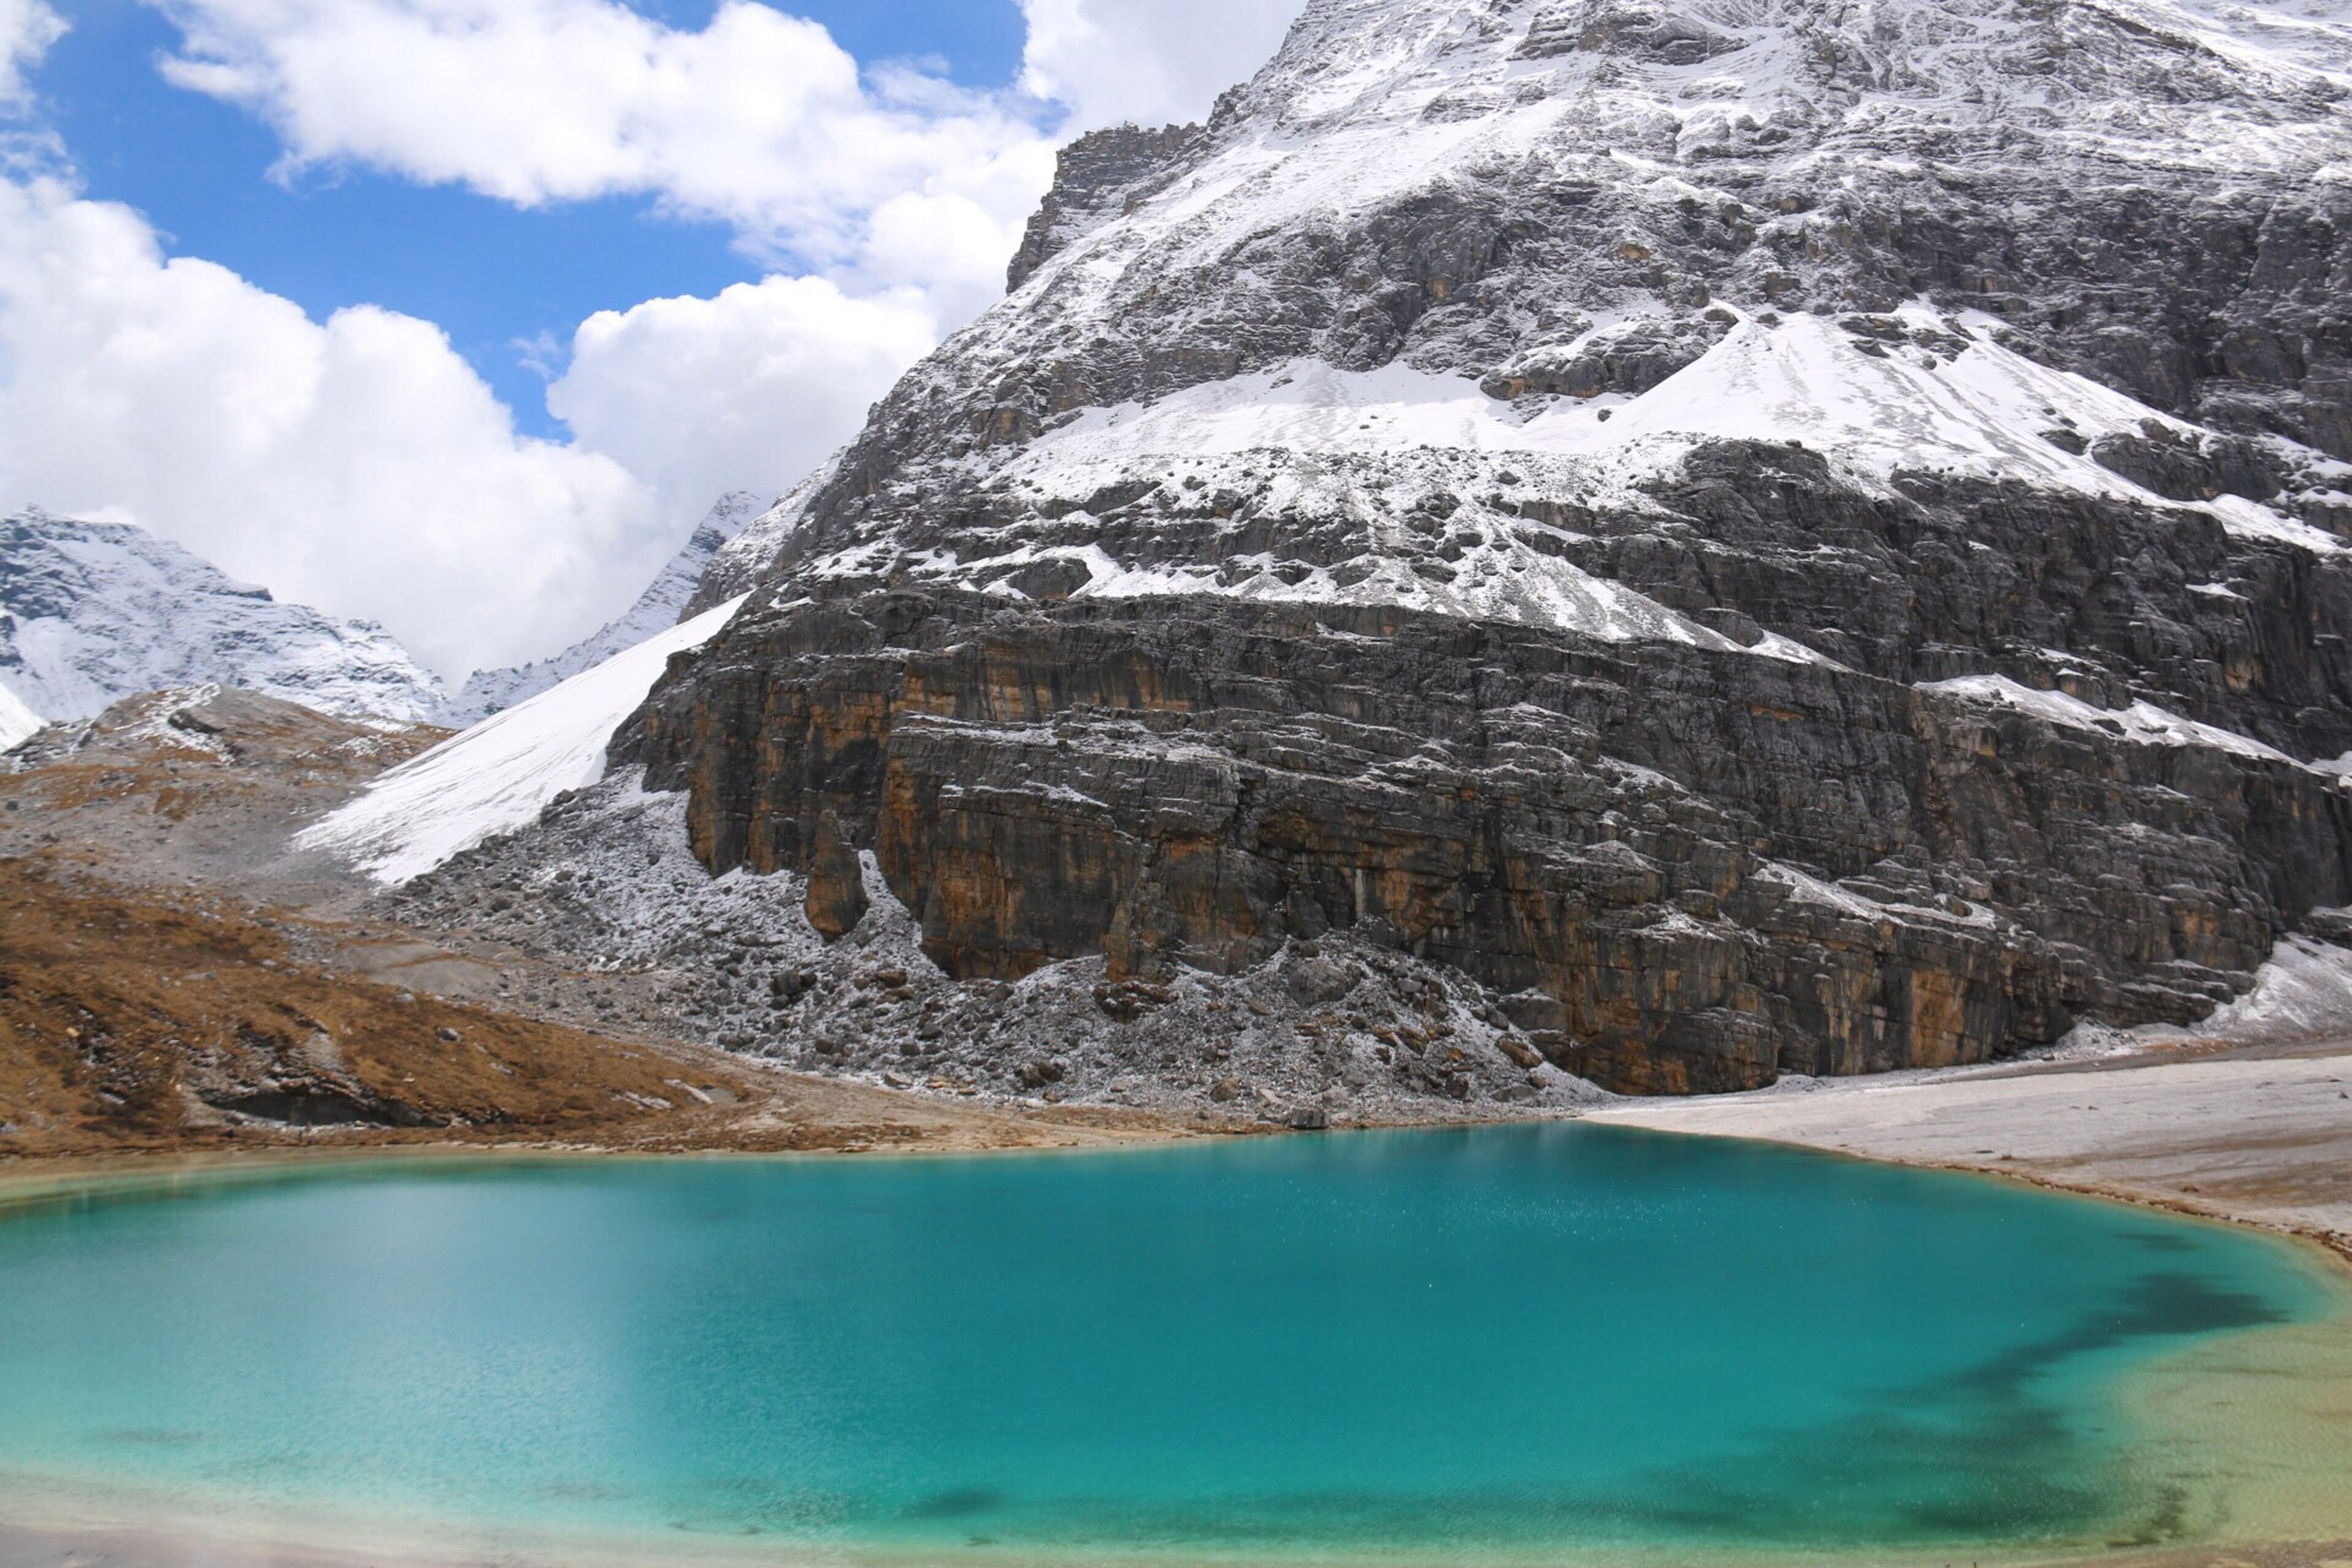 tranquil scene, snow, winter, cold temperature, scenics, water, season, mountain, tranquility, beauty in nature, weather, nature, sky, idyllic, lake, non-urban scene, snowcapped mountain, cloud - sky, majestic, remote, day, outdoors, mountain range, vacations, calm, rocky mountains, tourism, mountain peak, curve, solitude, no people